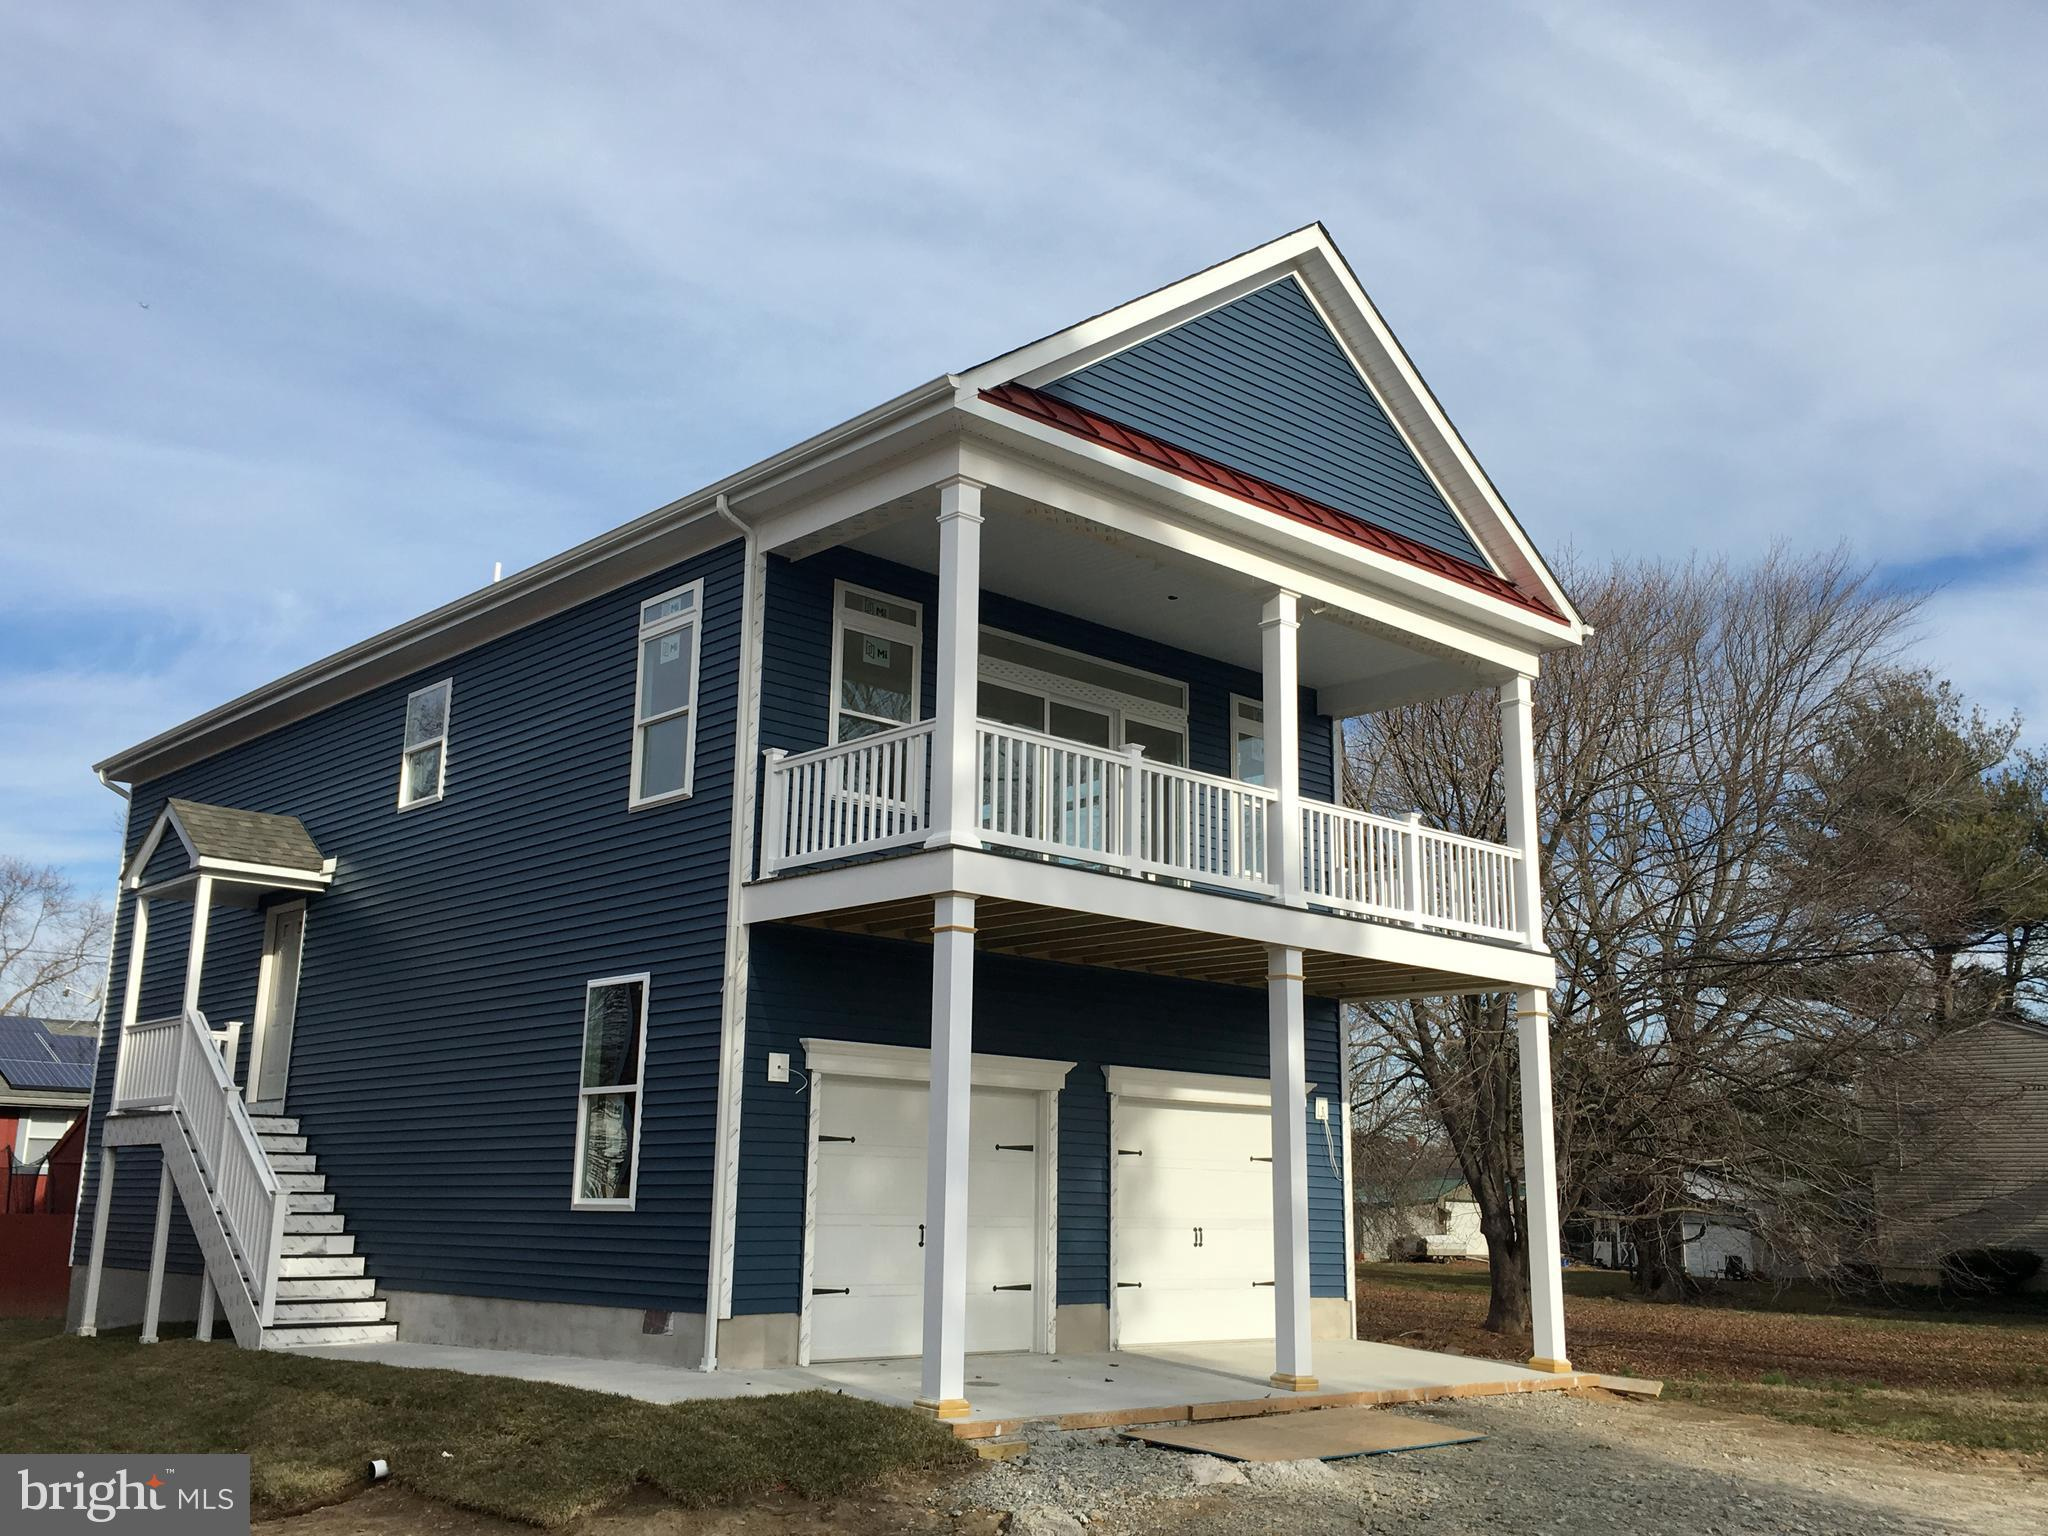 "Quick Delivery - New Construction with water-view of the Branch Canal, Public Marina, Fort DuPont and The Castle Trail Promenade. Beautifully designed Cottage Style Home with single floor living on upper level including  covered porch for outdoor living area and panoramic views. Wonderful lifestyle in this Historic, Walkable, Waterfront community on the Delaware River!!  Still time to make interior selections. 3 bedroom, 2 1/2 bath with Great Room / Kitchen / Dining combination with 9' ceiling height & trey ceiling. Nicely sized Owners Bedroom includes wonderful natural light / windows, oversized ceramic tile shower and walk-in closet. Oversized two car garage includes storage closets. Home is nearing completion with quick delivery possibilities. Upgraded features include; 42"" white cabinets & vanities, granite counter tops, oak stairs & railings, LVP Flooring, Ceramic tile floor and shower in owners bedroom, composite decking, vinyl porch post & railings and much more. Community includes the Delaware River, Branch Canal, Restaurants, Public Marina, Historic Main Street District, Hiking trails,  Battery Park and Fort DuPont all within walking distance of your front door. Rare opportunity to own new construction and lifestyle that most people only dream of!"